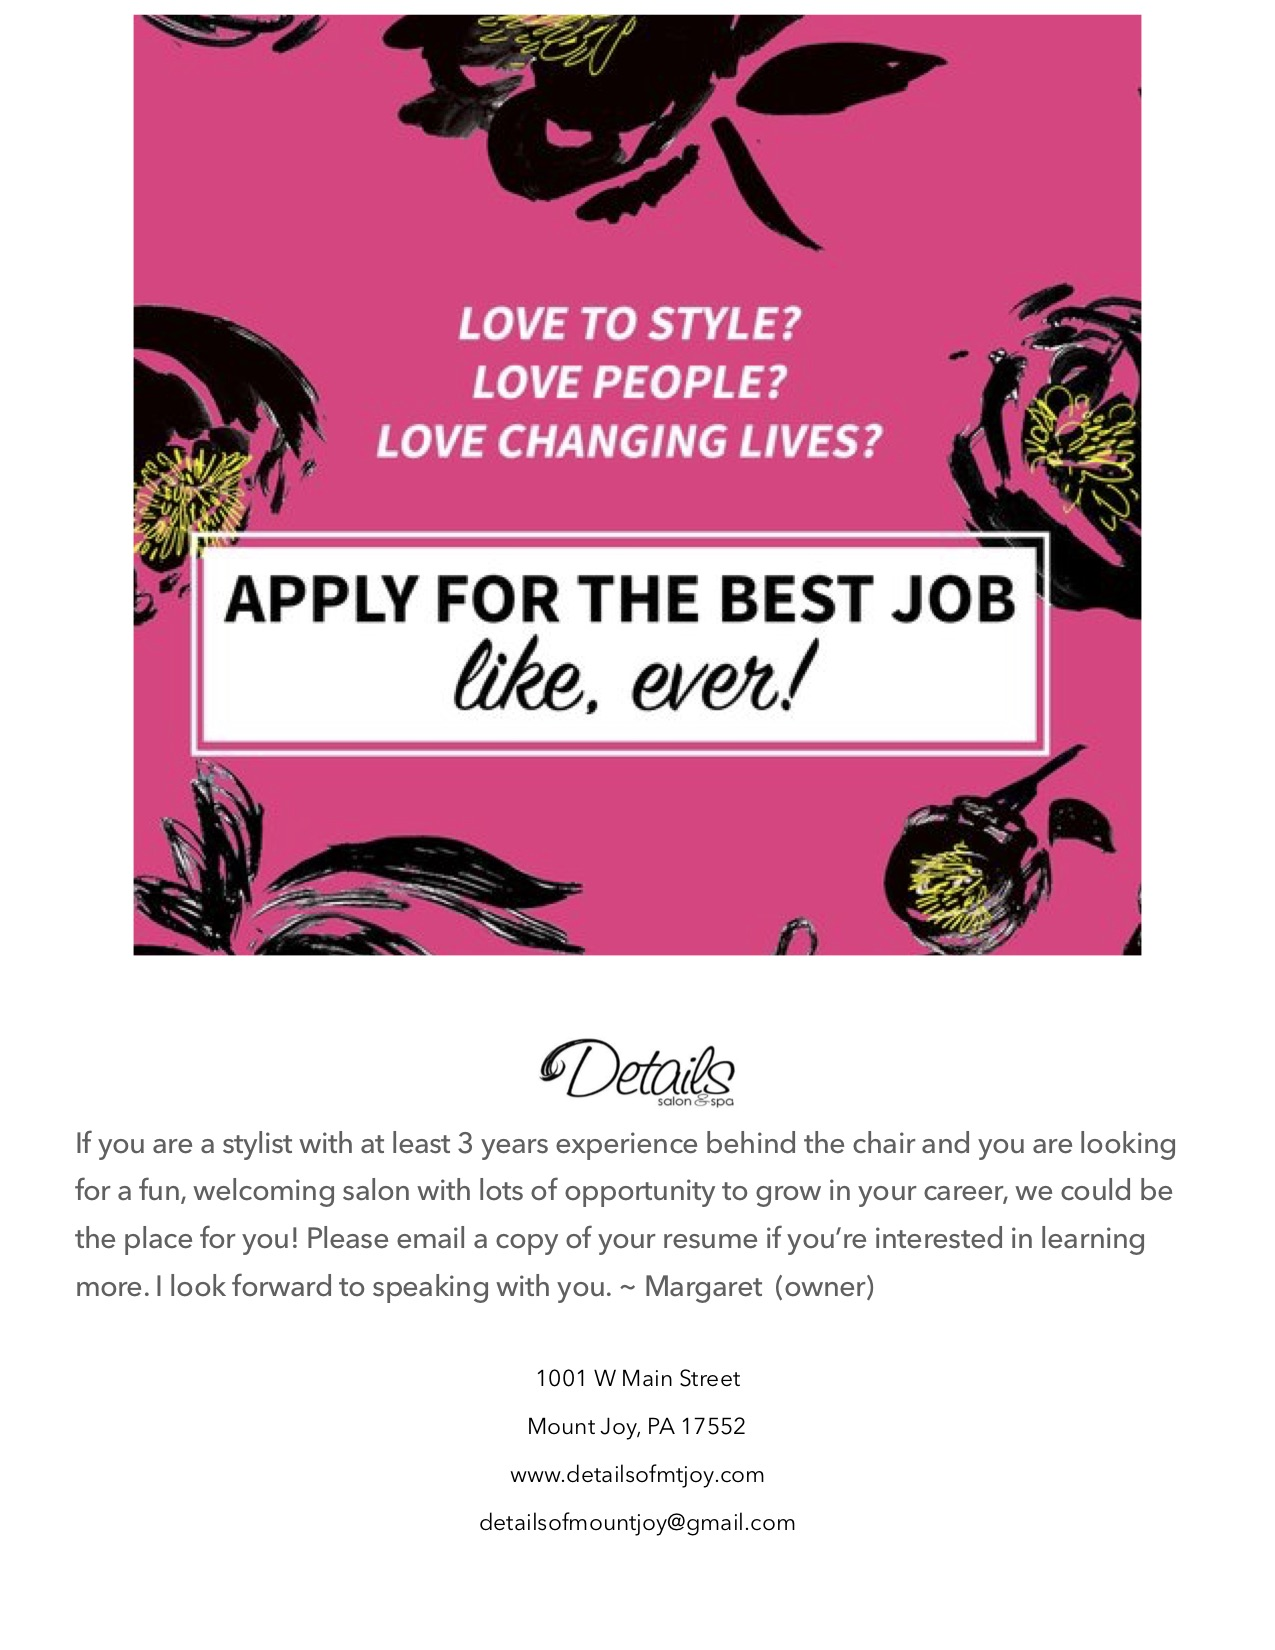 apply to become a hair stylist in mount joy pa